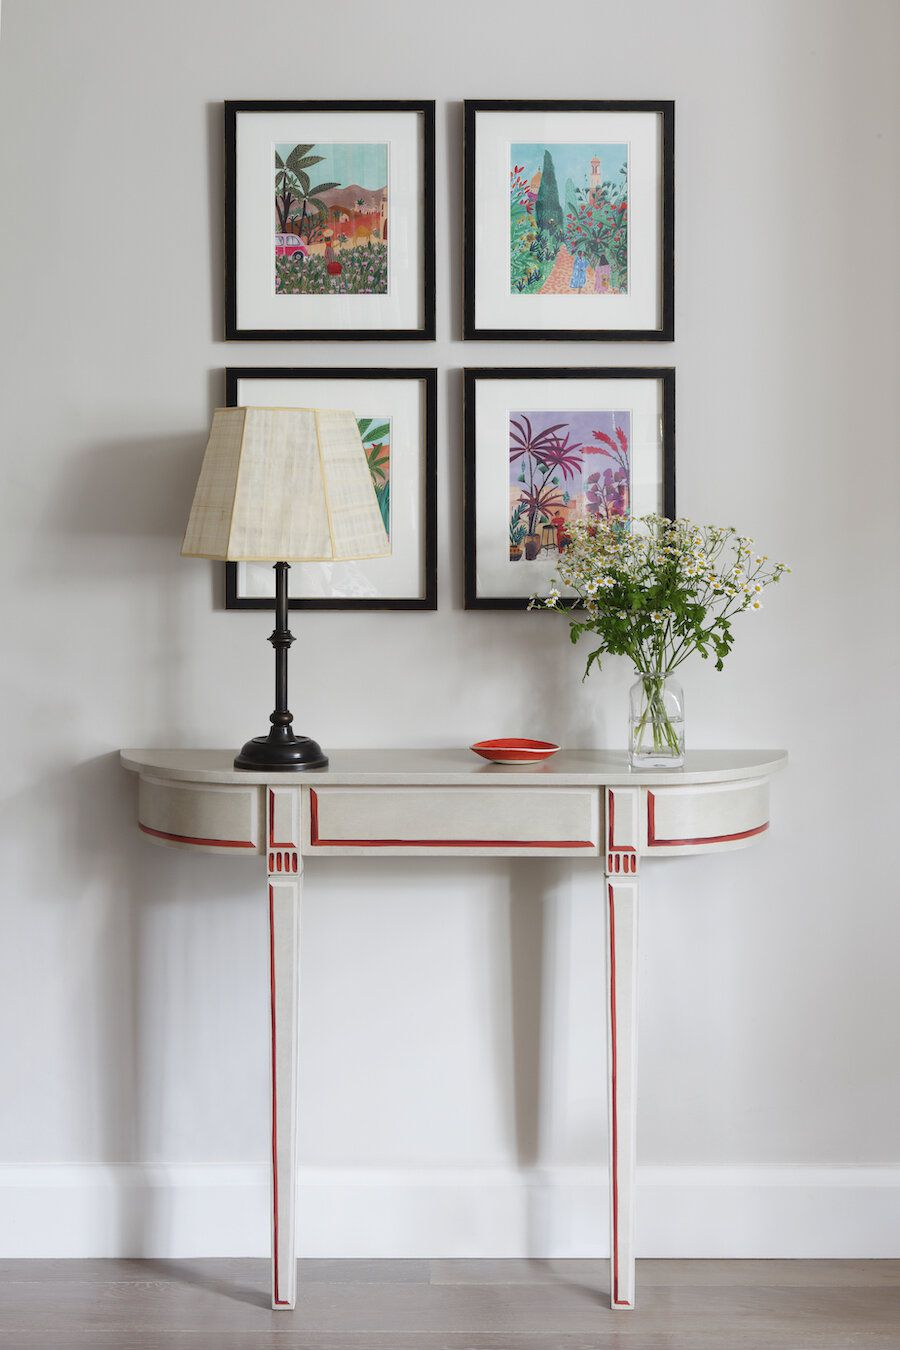 A gray wall with art and a decorative cabinet on it